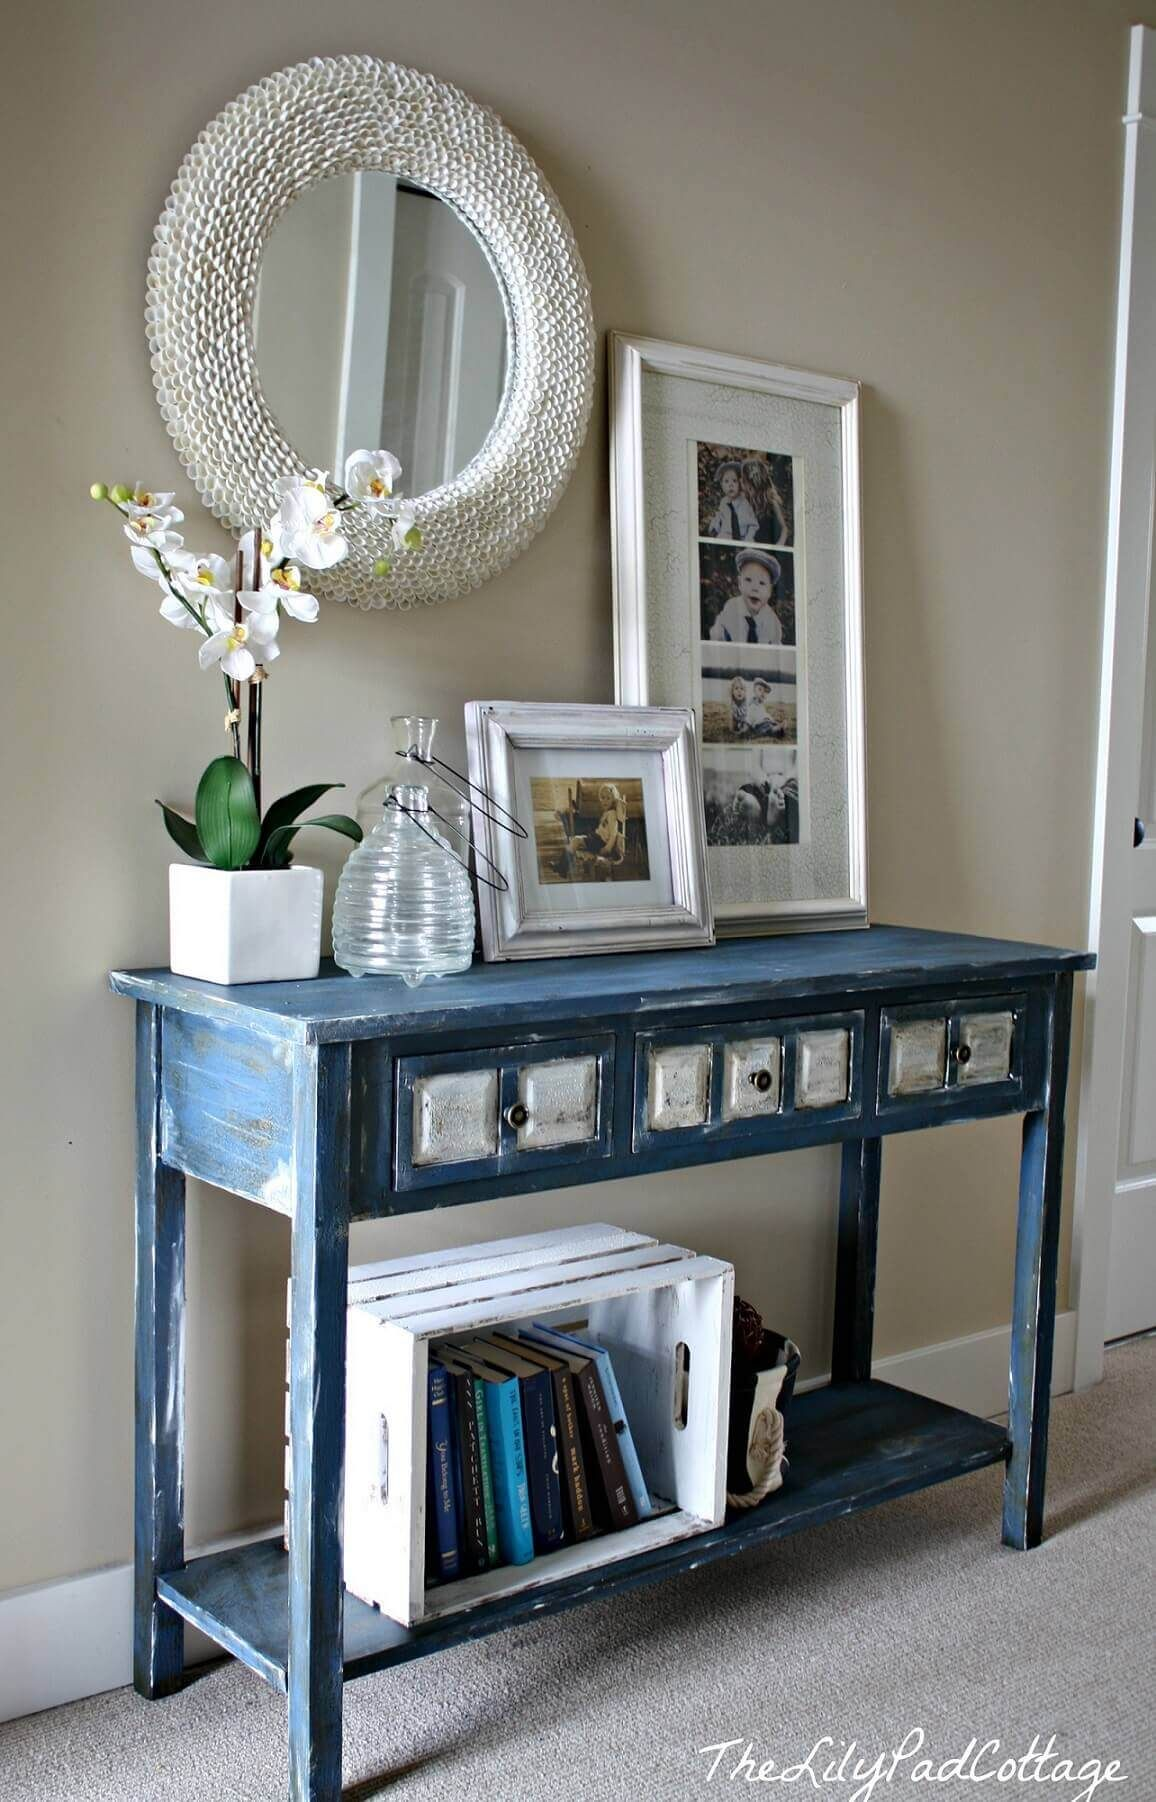 28 Appealing Small Entryway Decor Ideas To Welcome You Home Hall Decor Entry Table Decor Entryway Decor Small